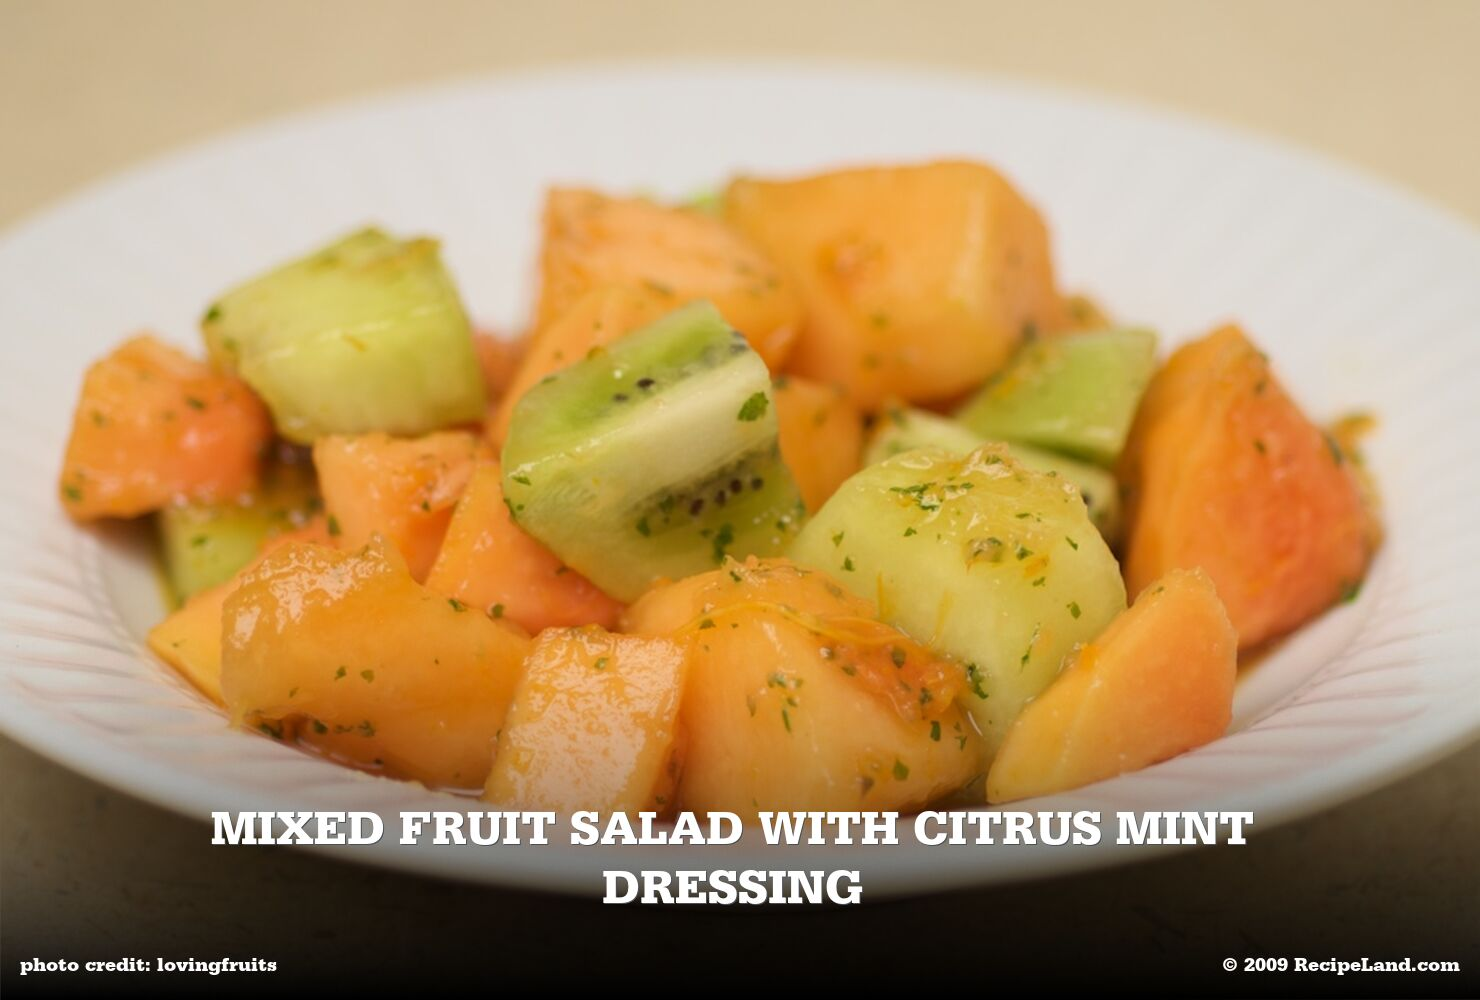 Mixed Fruit Salad with Citrus Mint Dressing